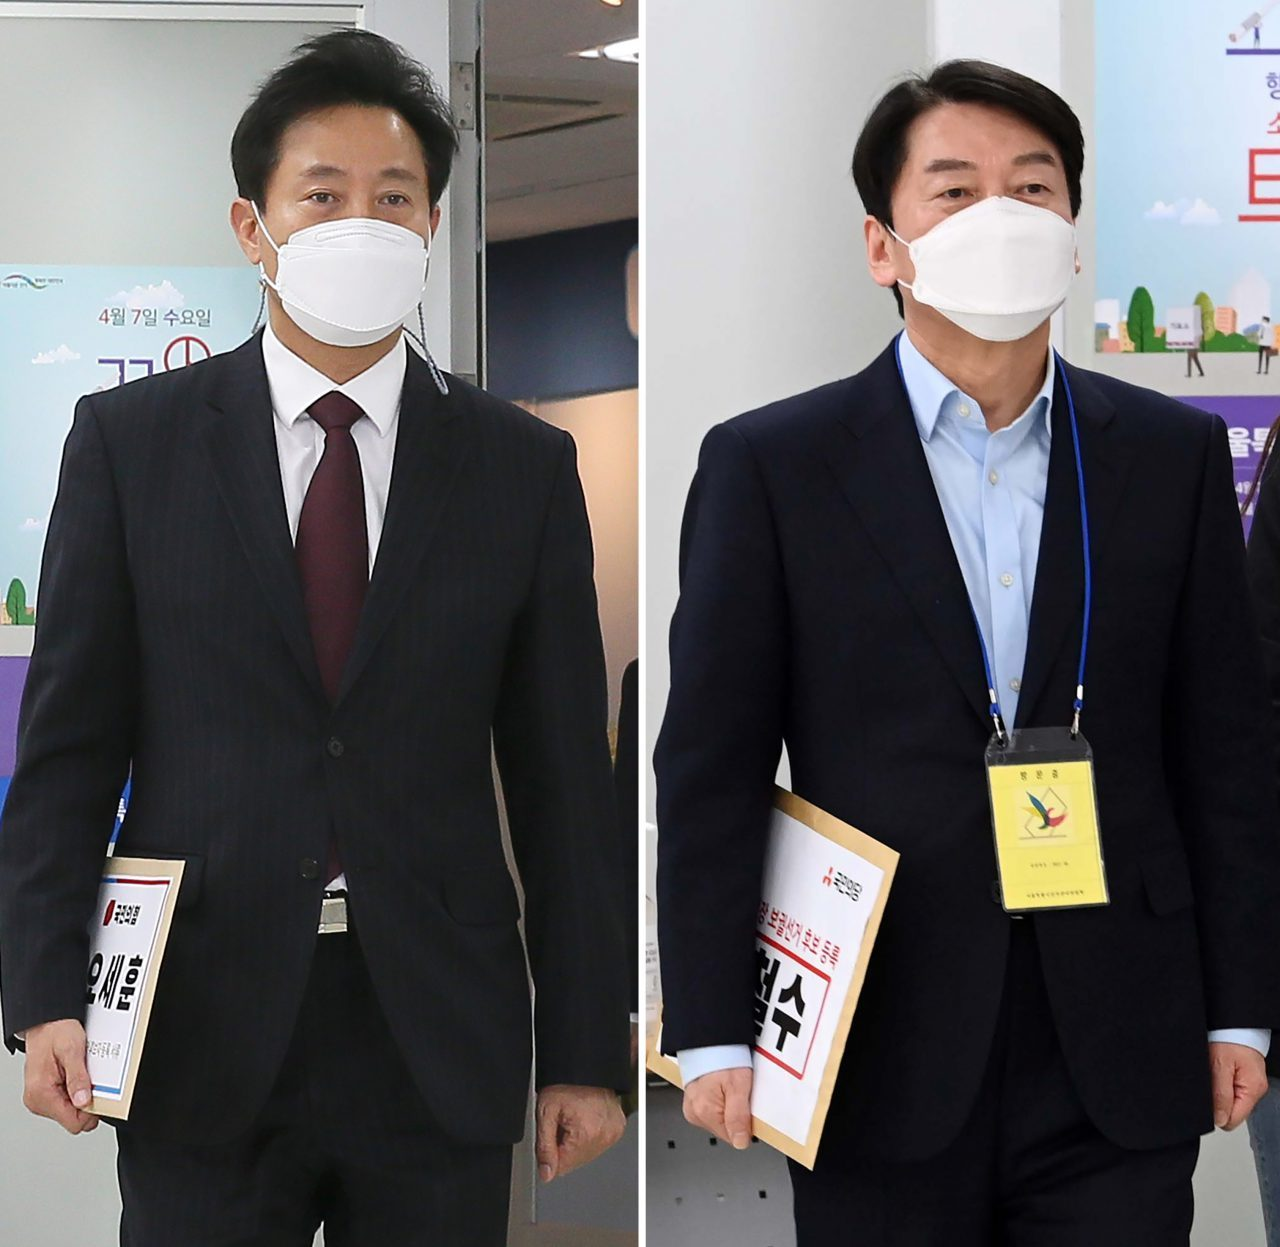 This compilation image, using photos provided by the National Assembly photo press corps, shows Oh Se-hoon (L), the Seoul mayor candidate of the main opposition People Power Party, and his rival Ahn Cheol-soo of the minor conservative People's Party. (National Assembly photo press corps)